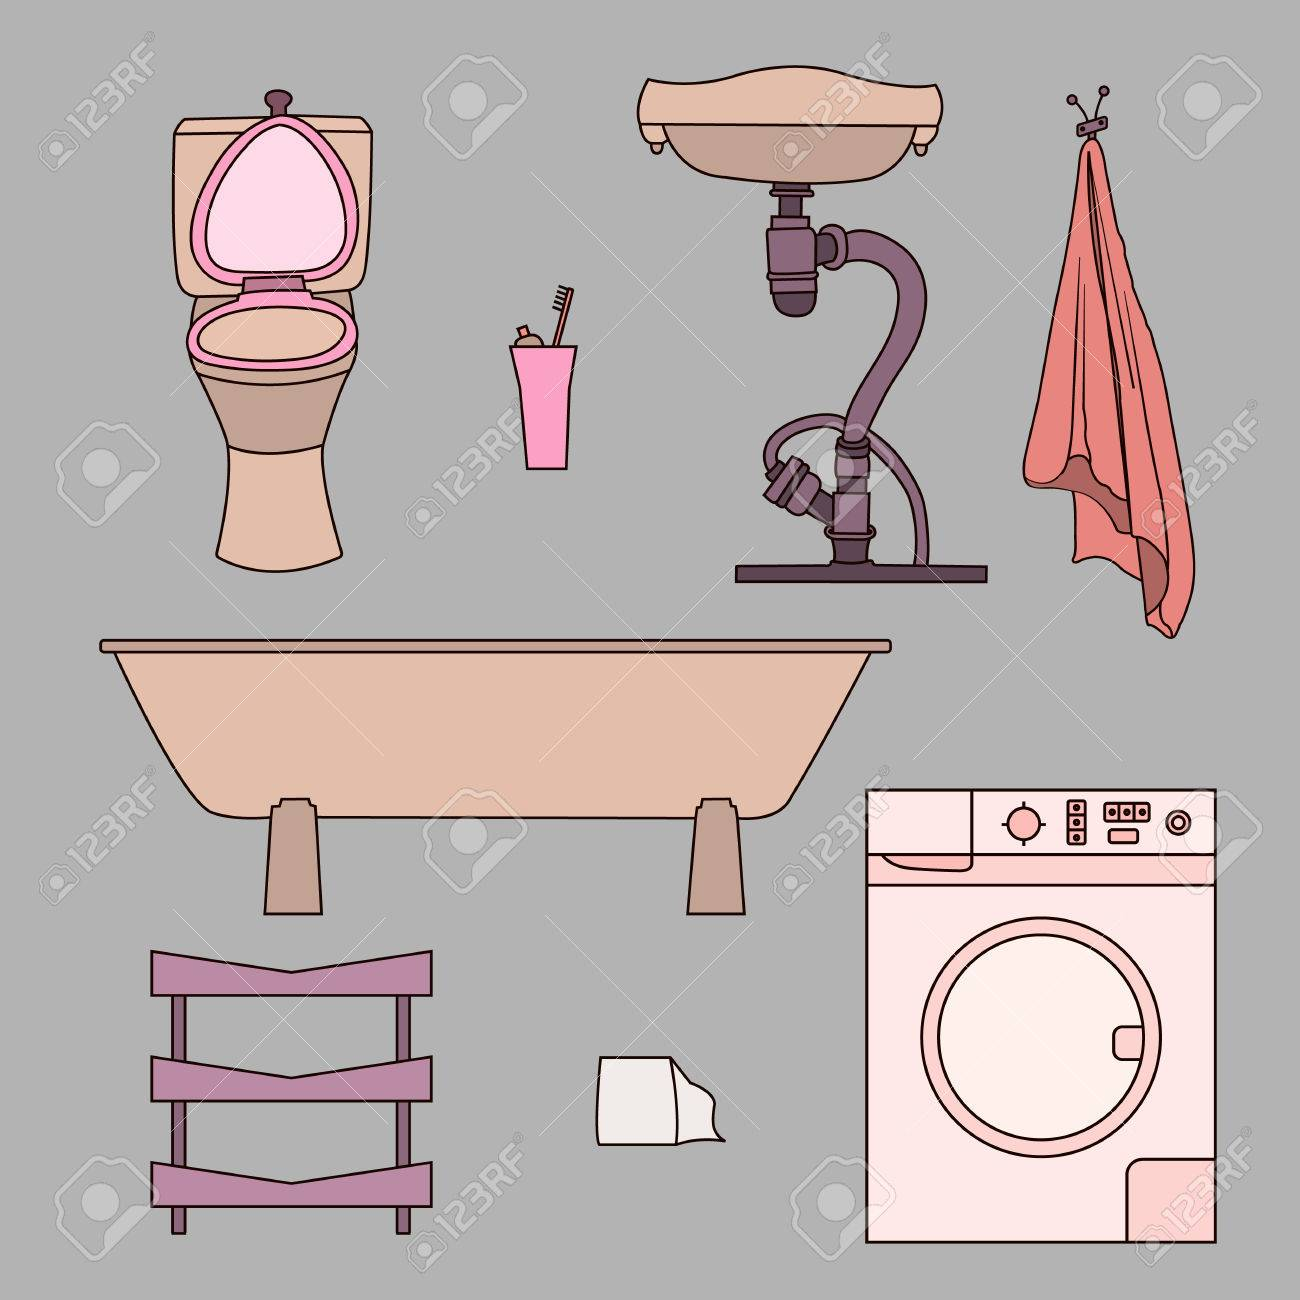 Set Of Drawn Doodles Of Bathroom Items Objects Isolated On Gray